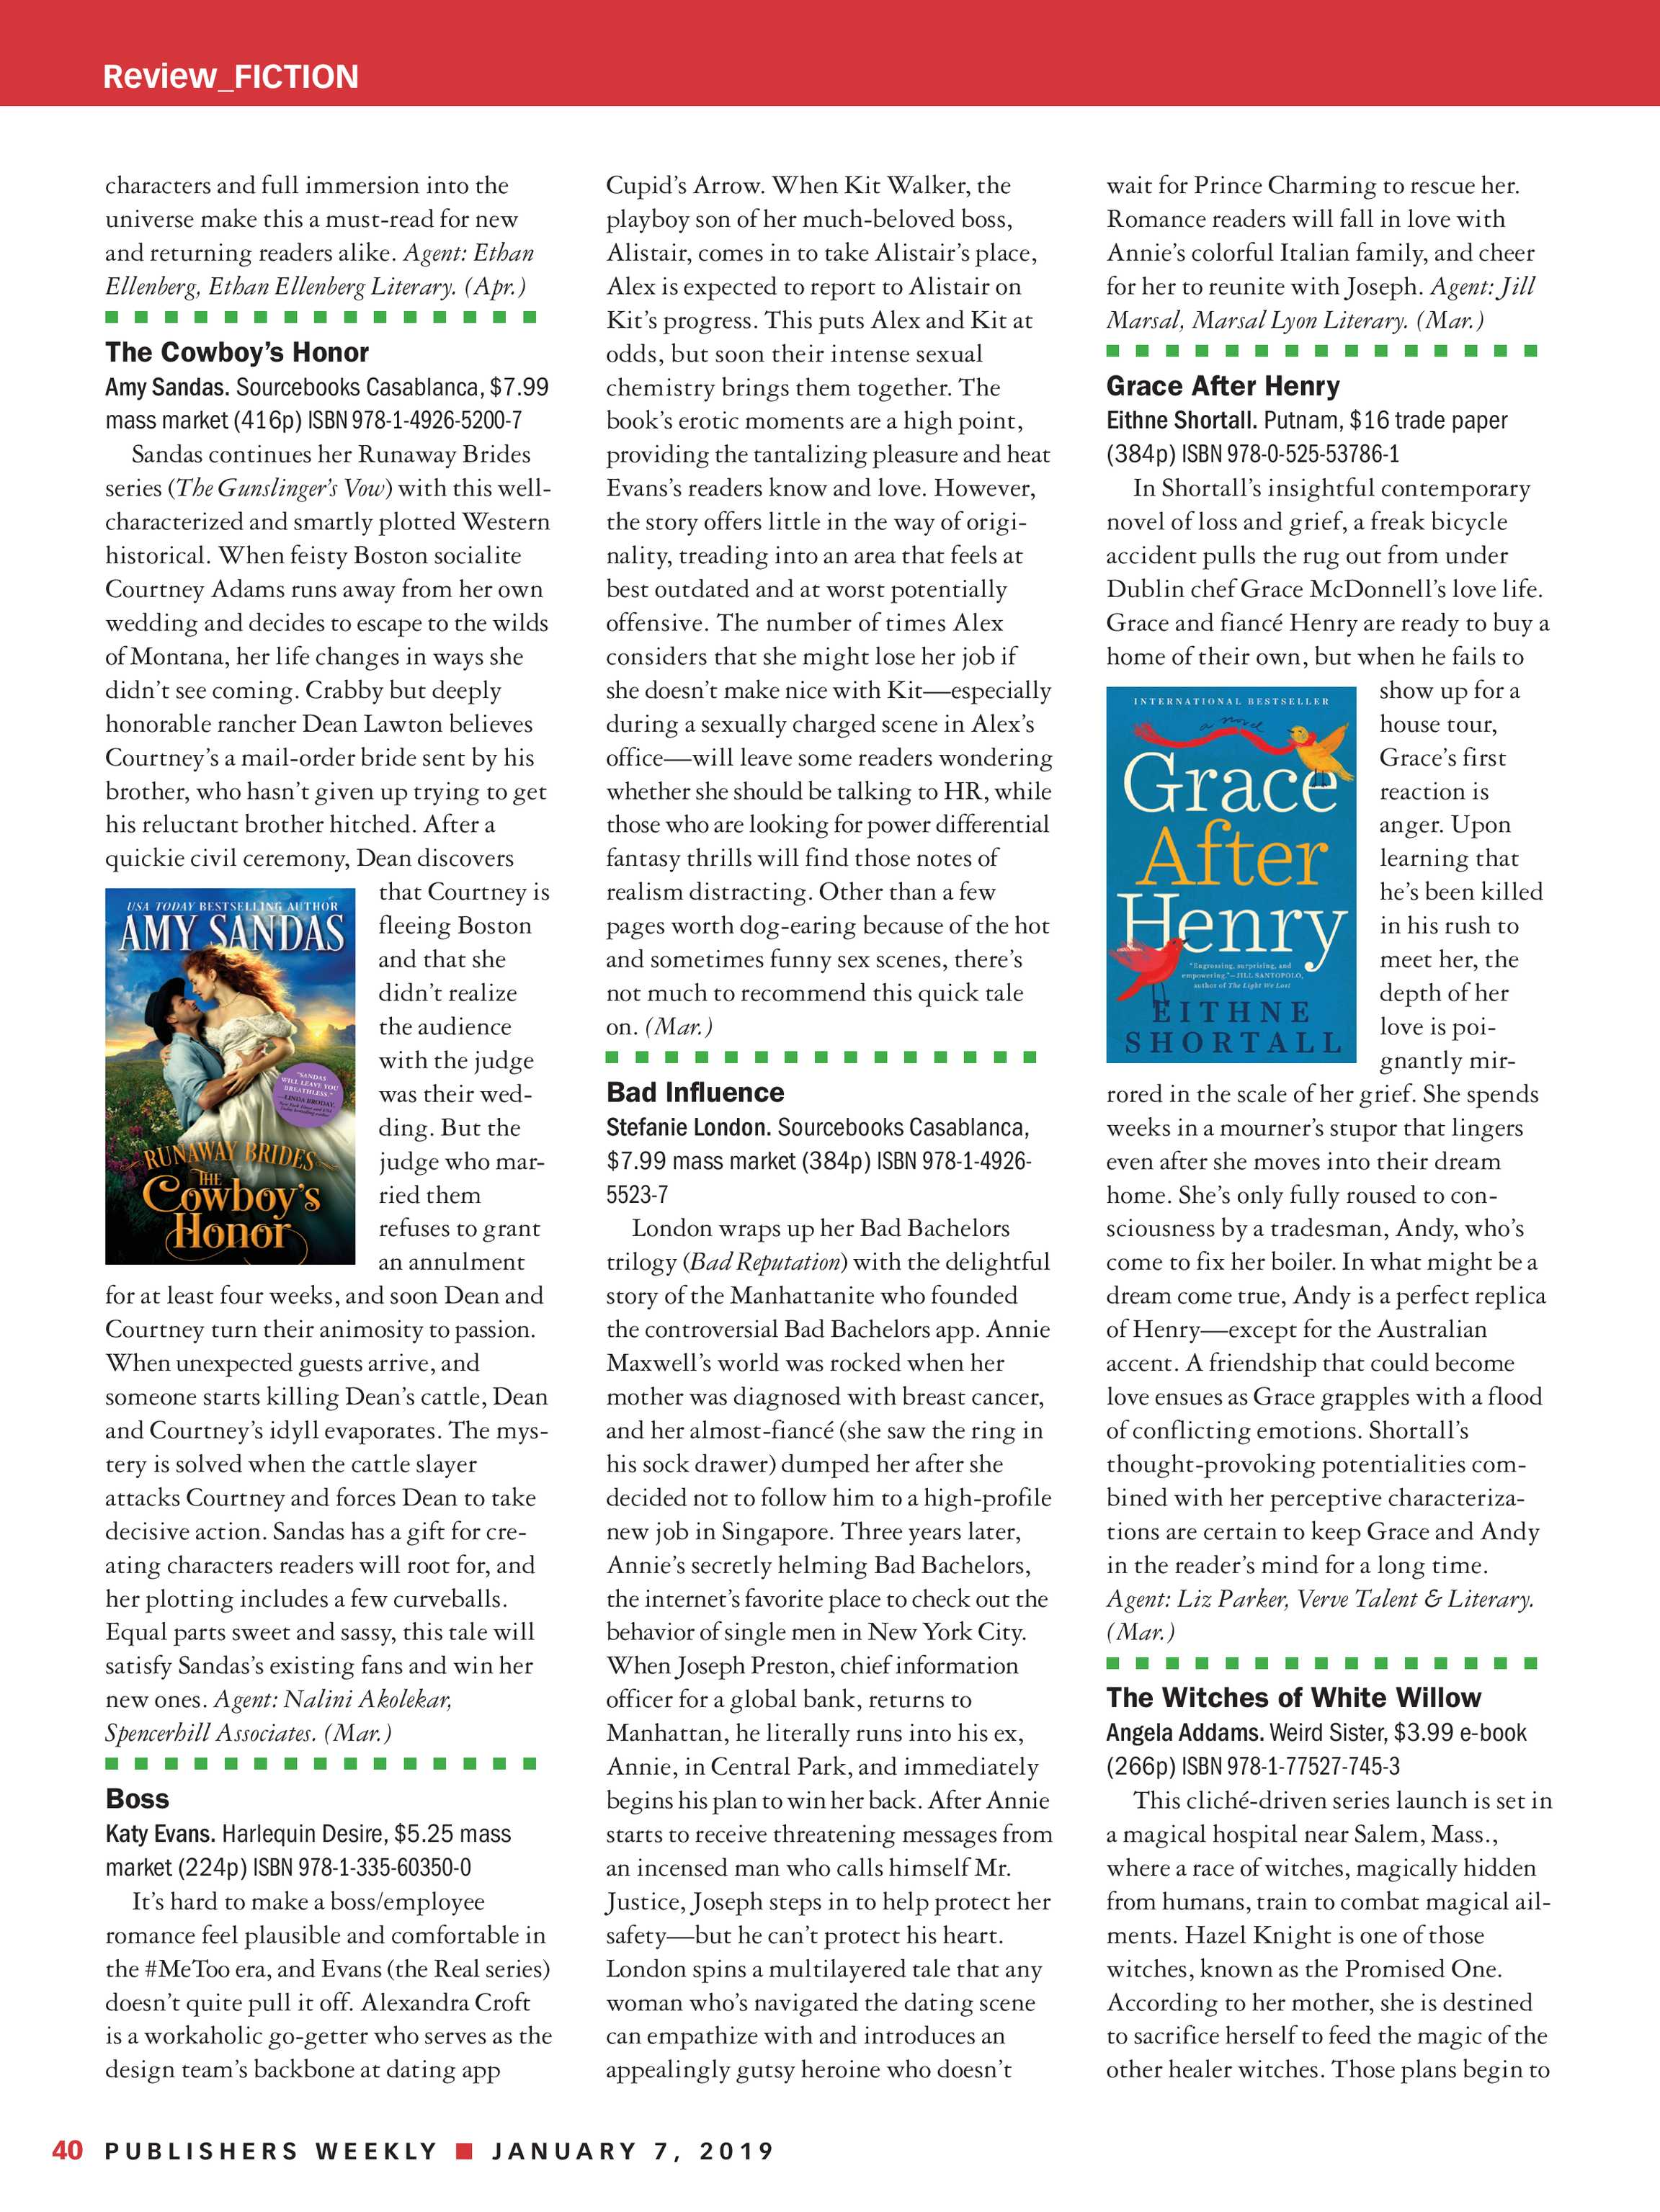 Publishers Weekly - January 7, 2019 - page 39